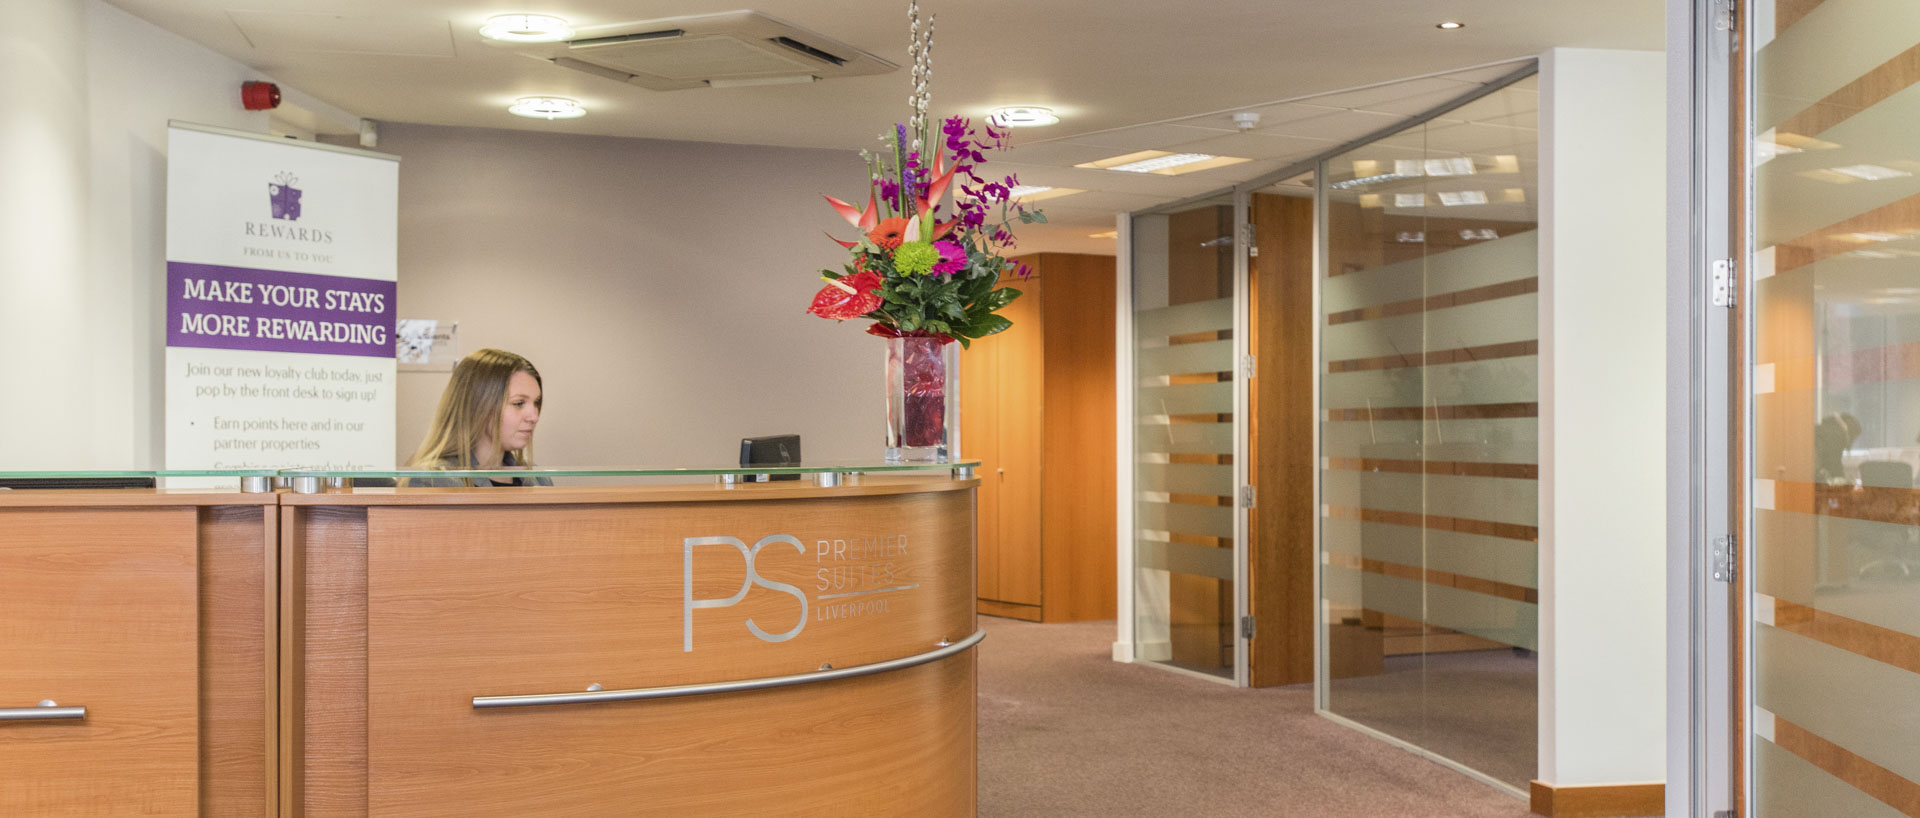 A receptionist at the front desk of PREMIER SUITES Liverpool